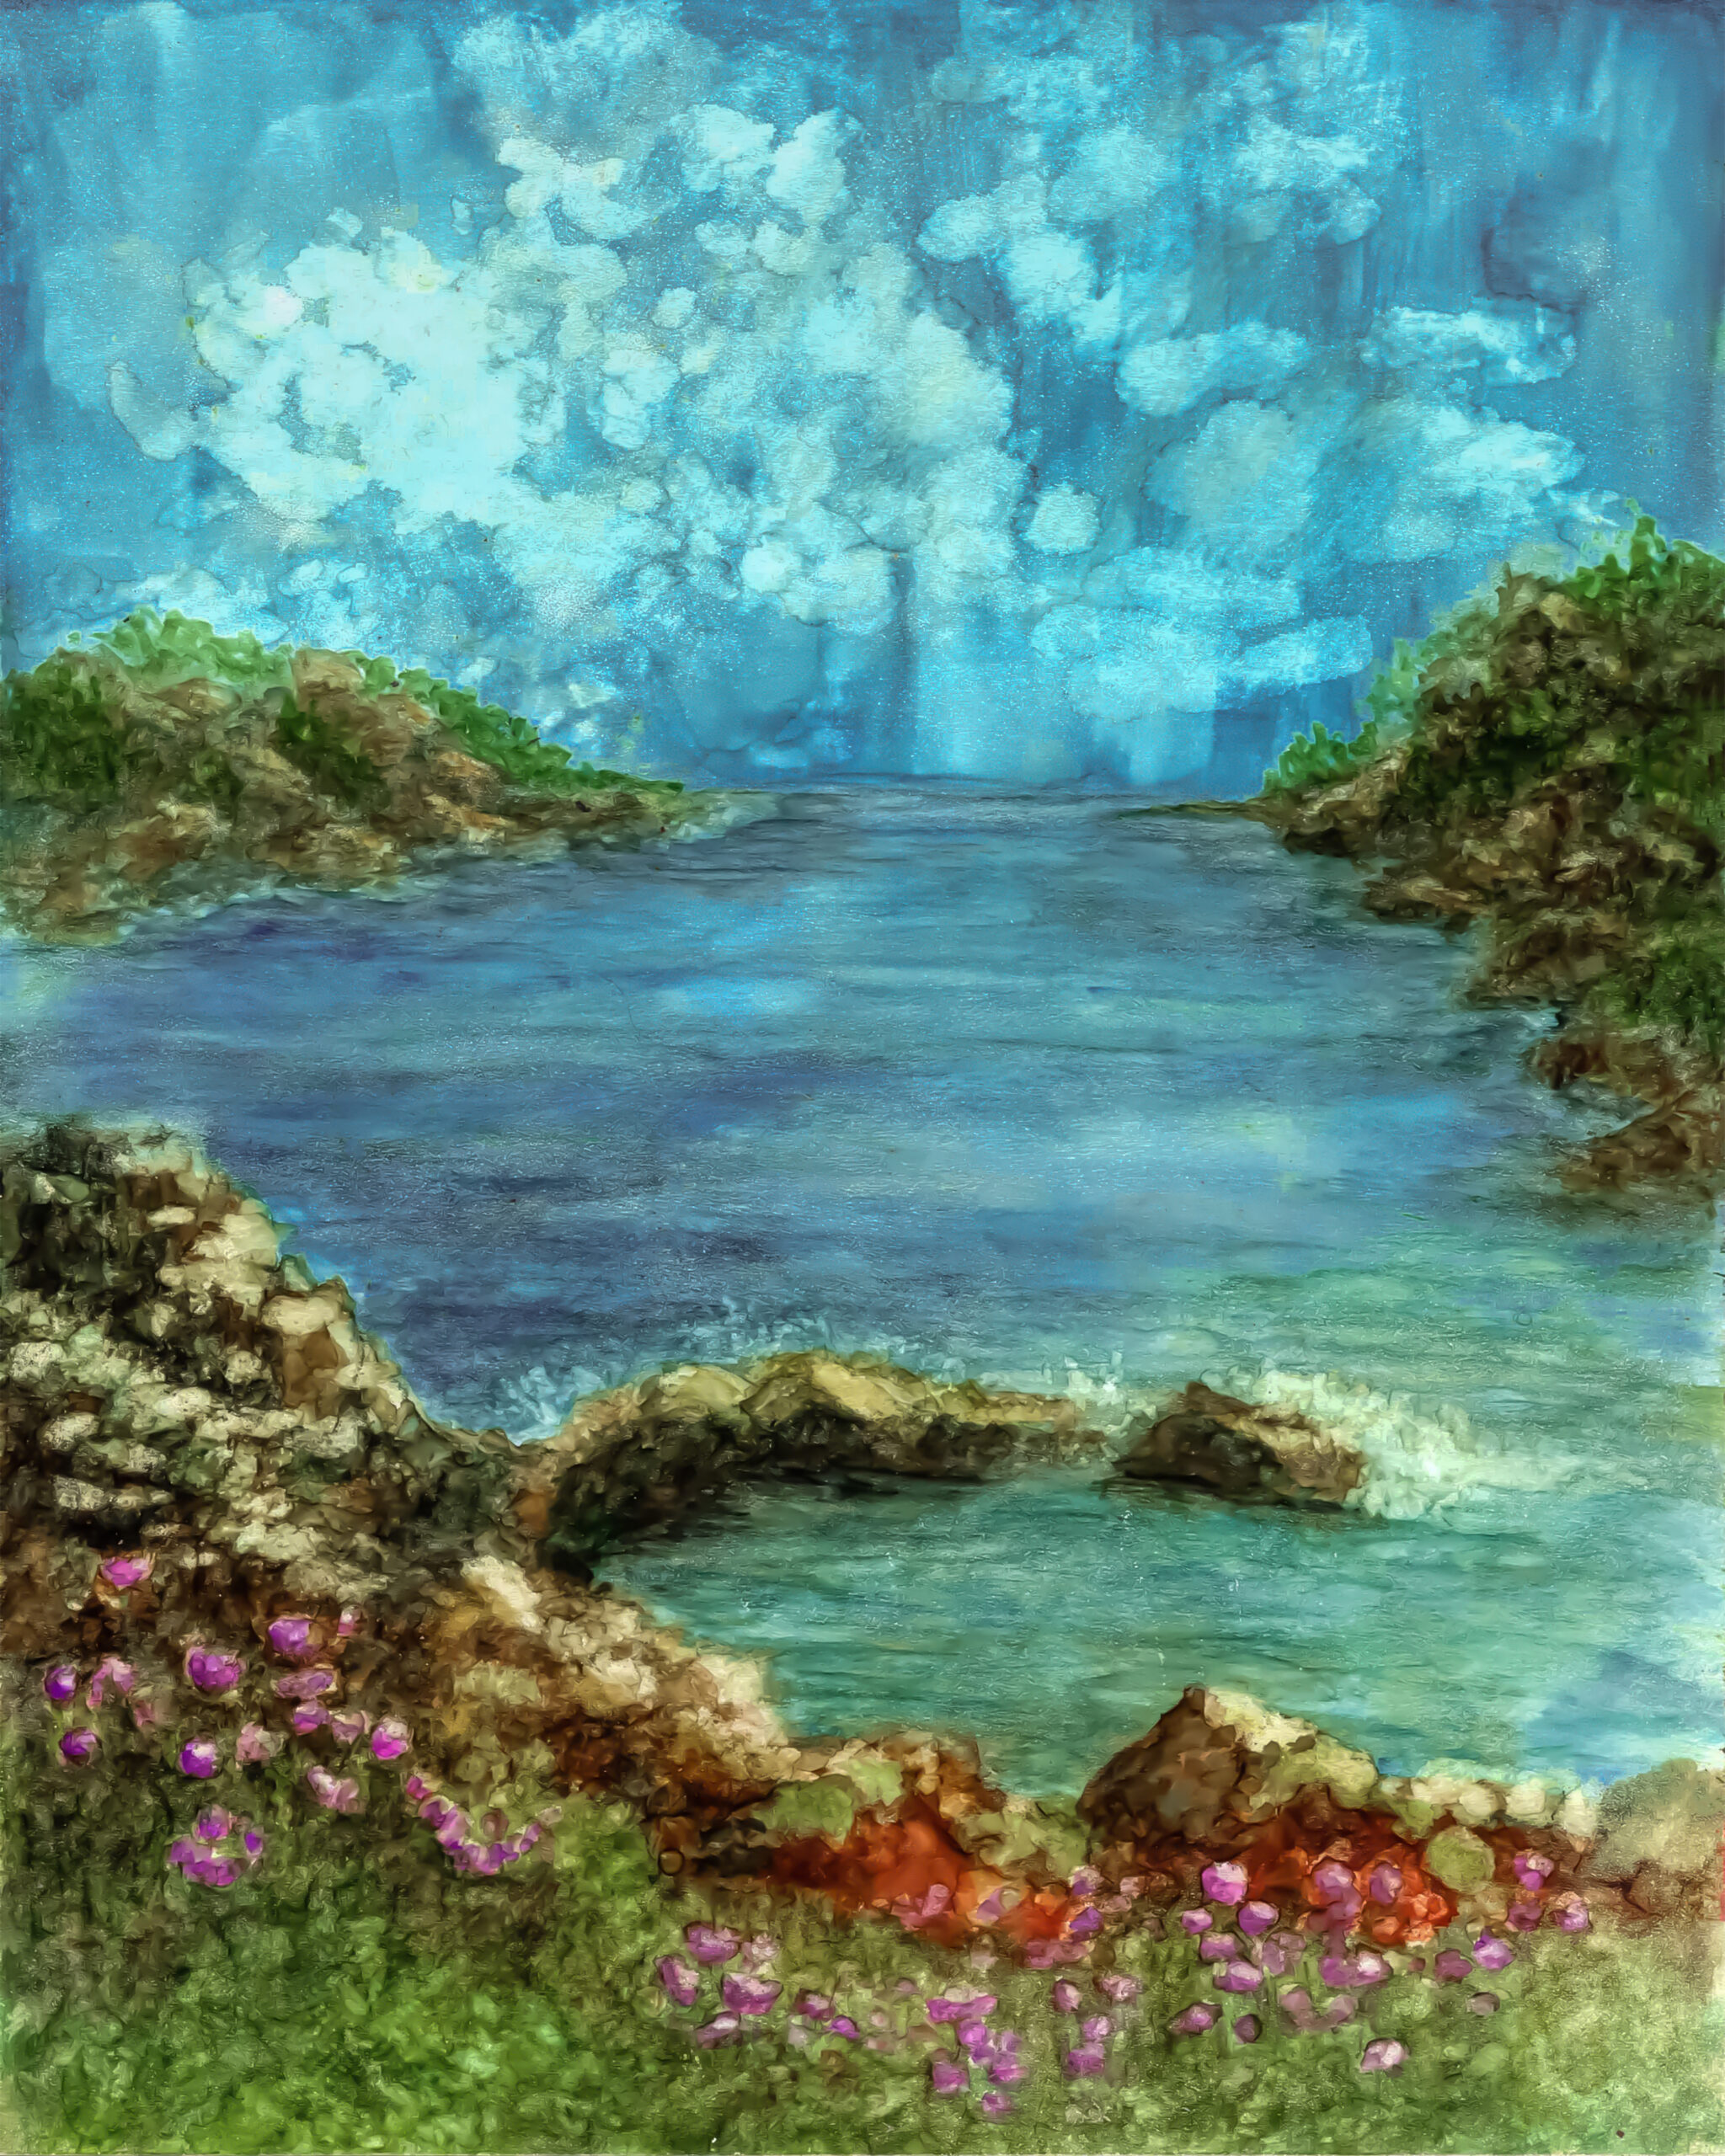 Seaside Painting in Alcohol Ink by Korinne Carpino